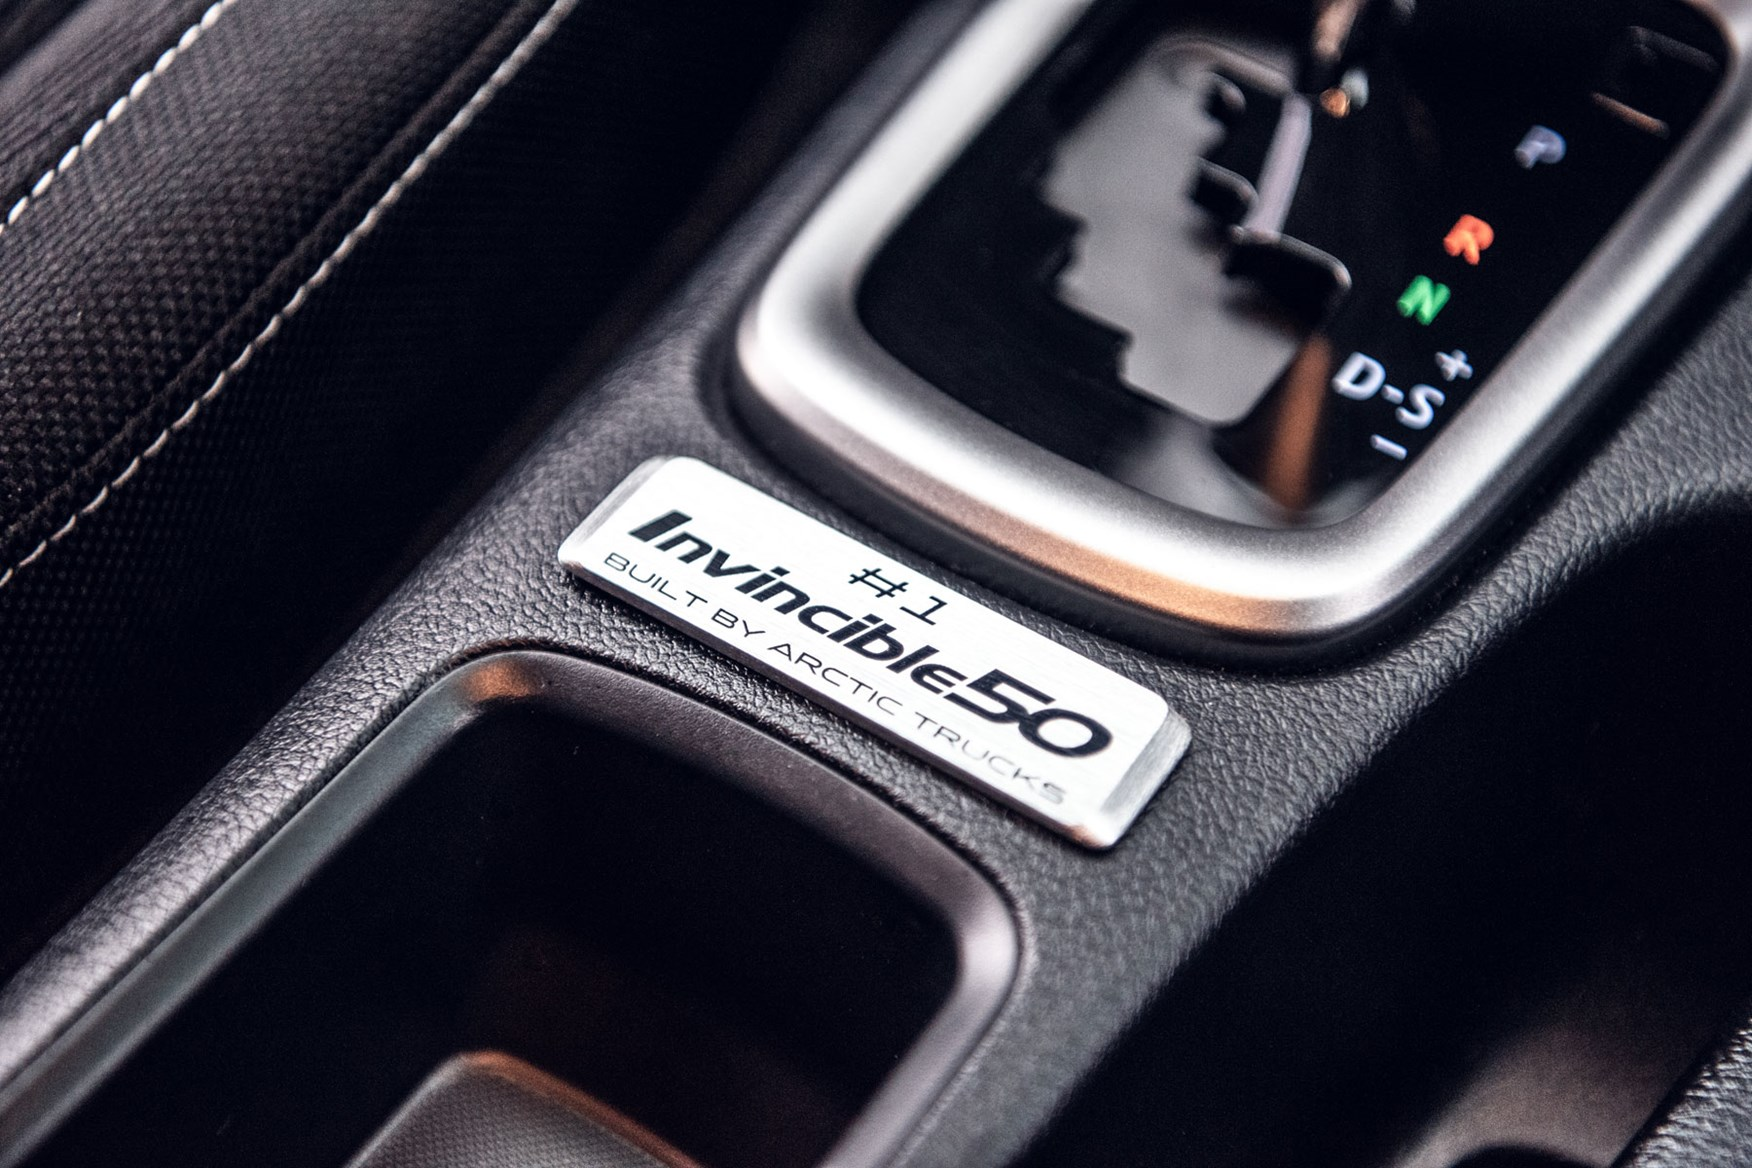 Toyota Hilux Invincible 50 review - numbered plaque on the centre console